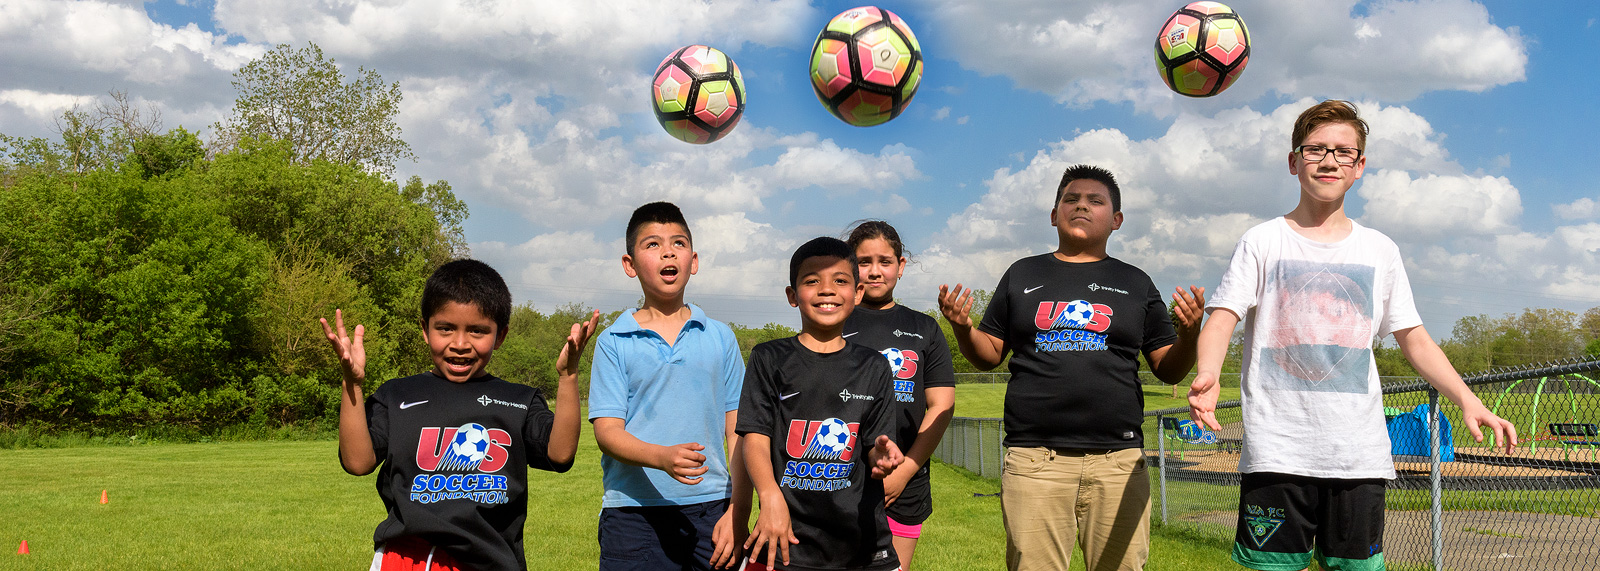 <span class='image-credits'>Pontiac youth learn soccer skills to stay healthy. Photo by Doug Coombe.</span>